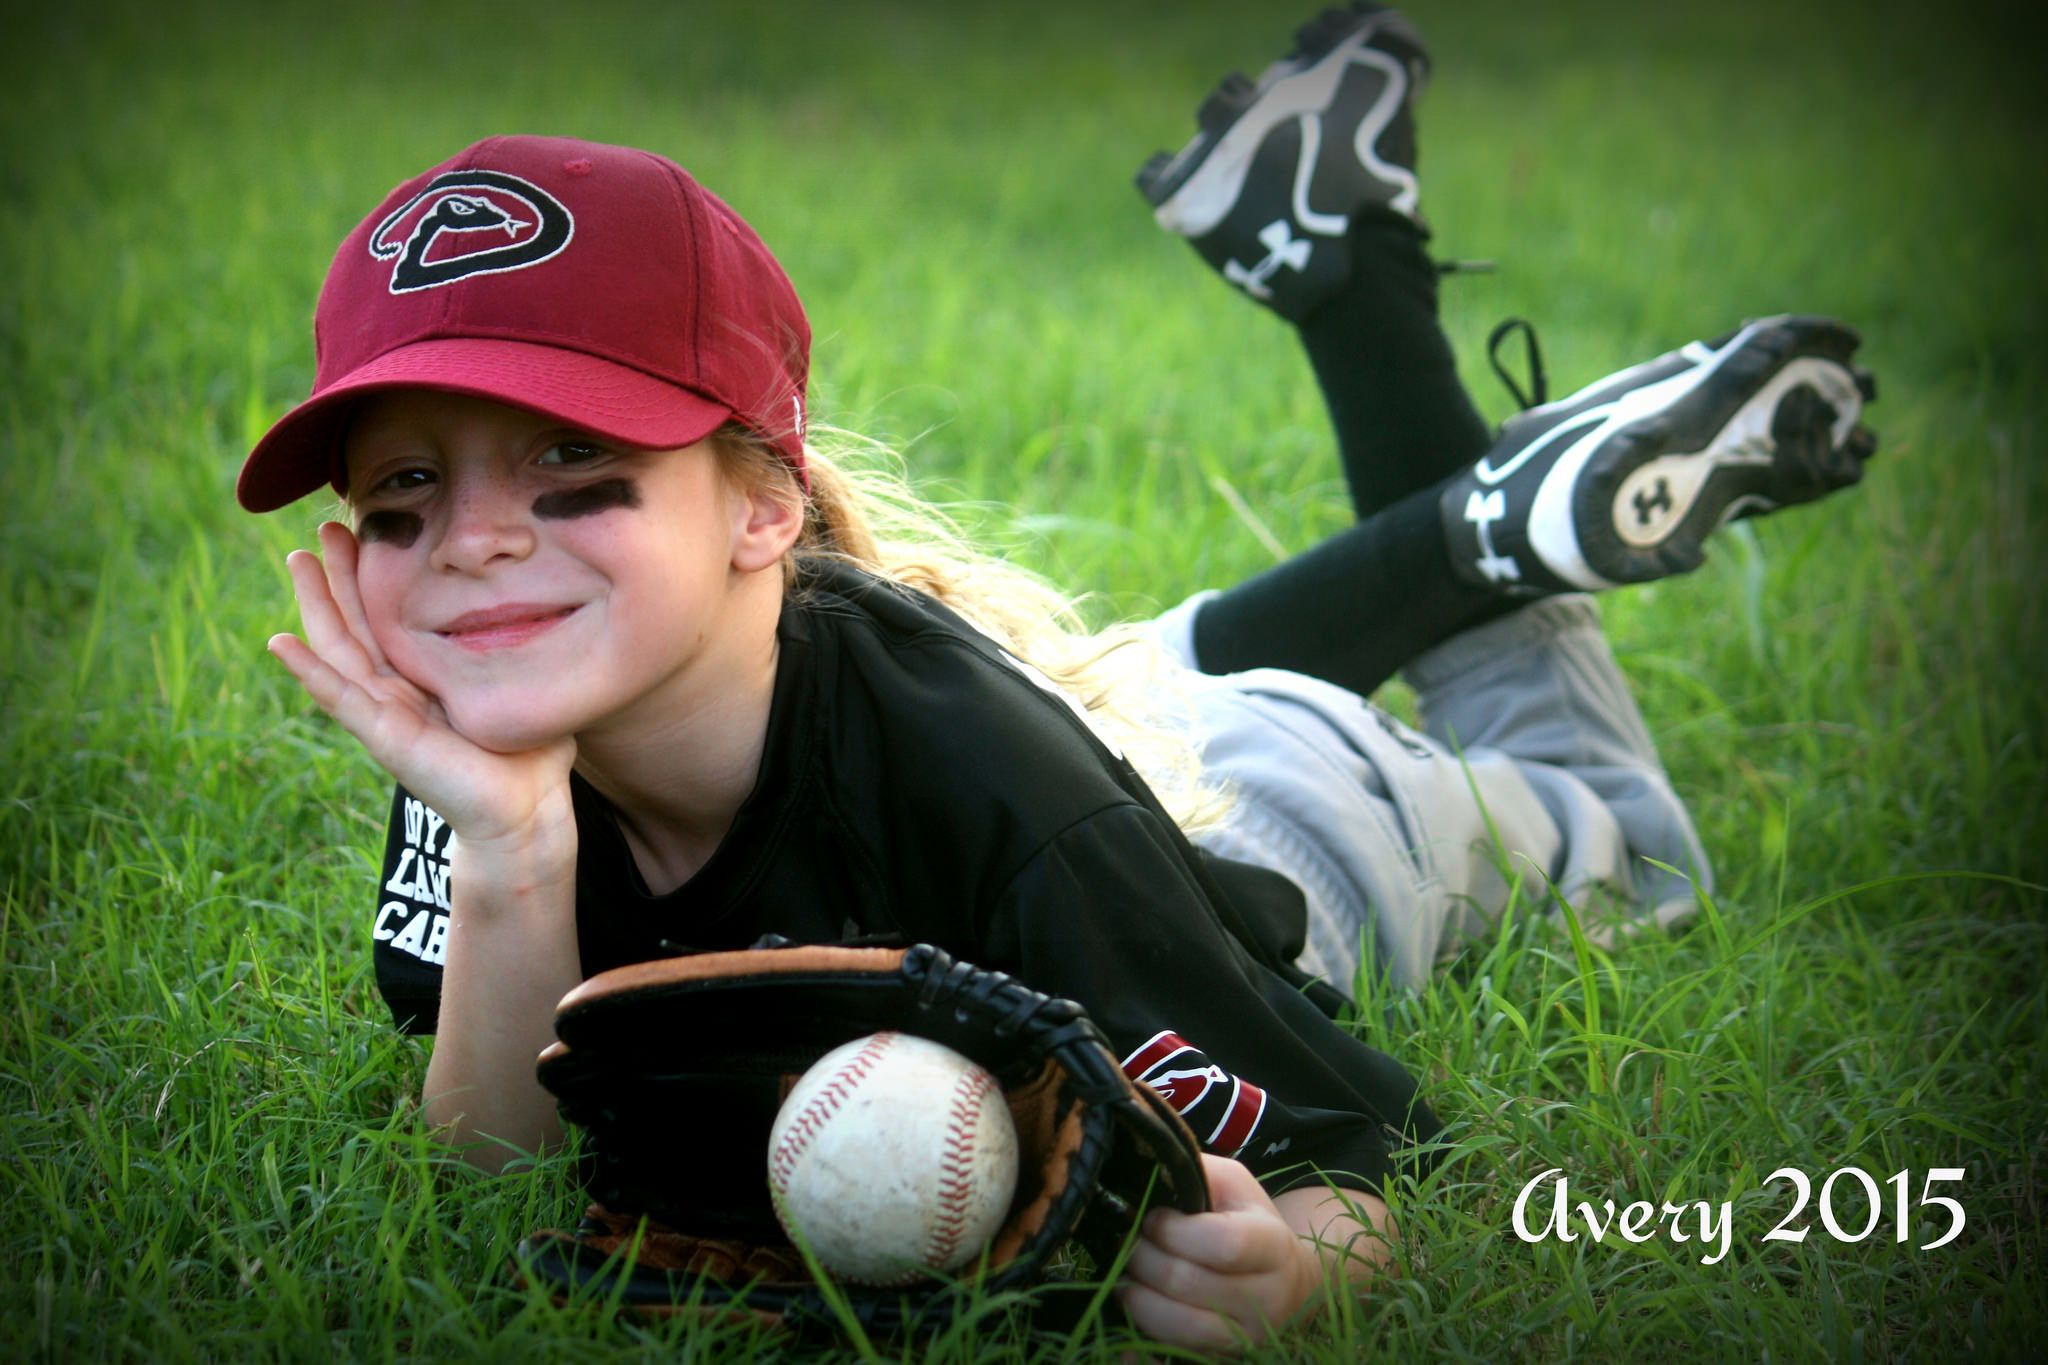 Avery Softball Photography Softball Pictures Poses Baseball